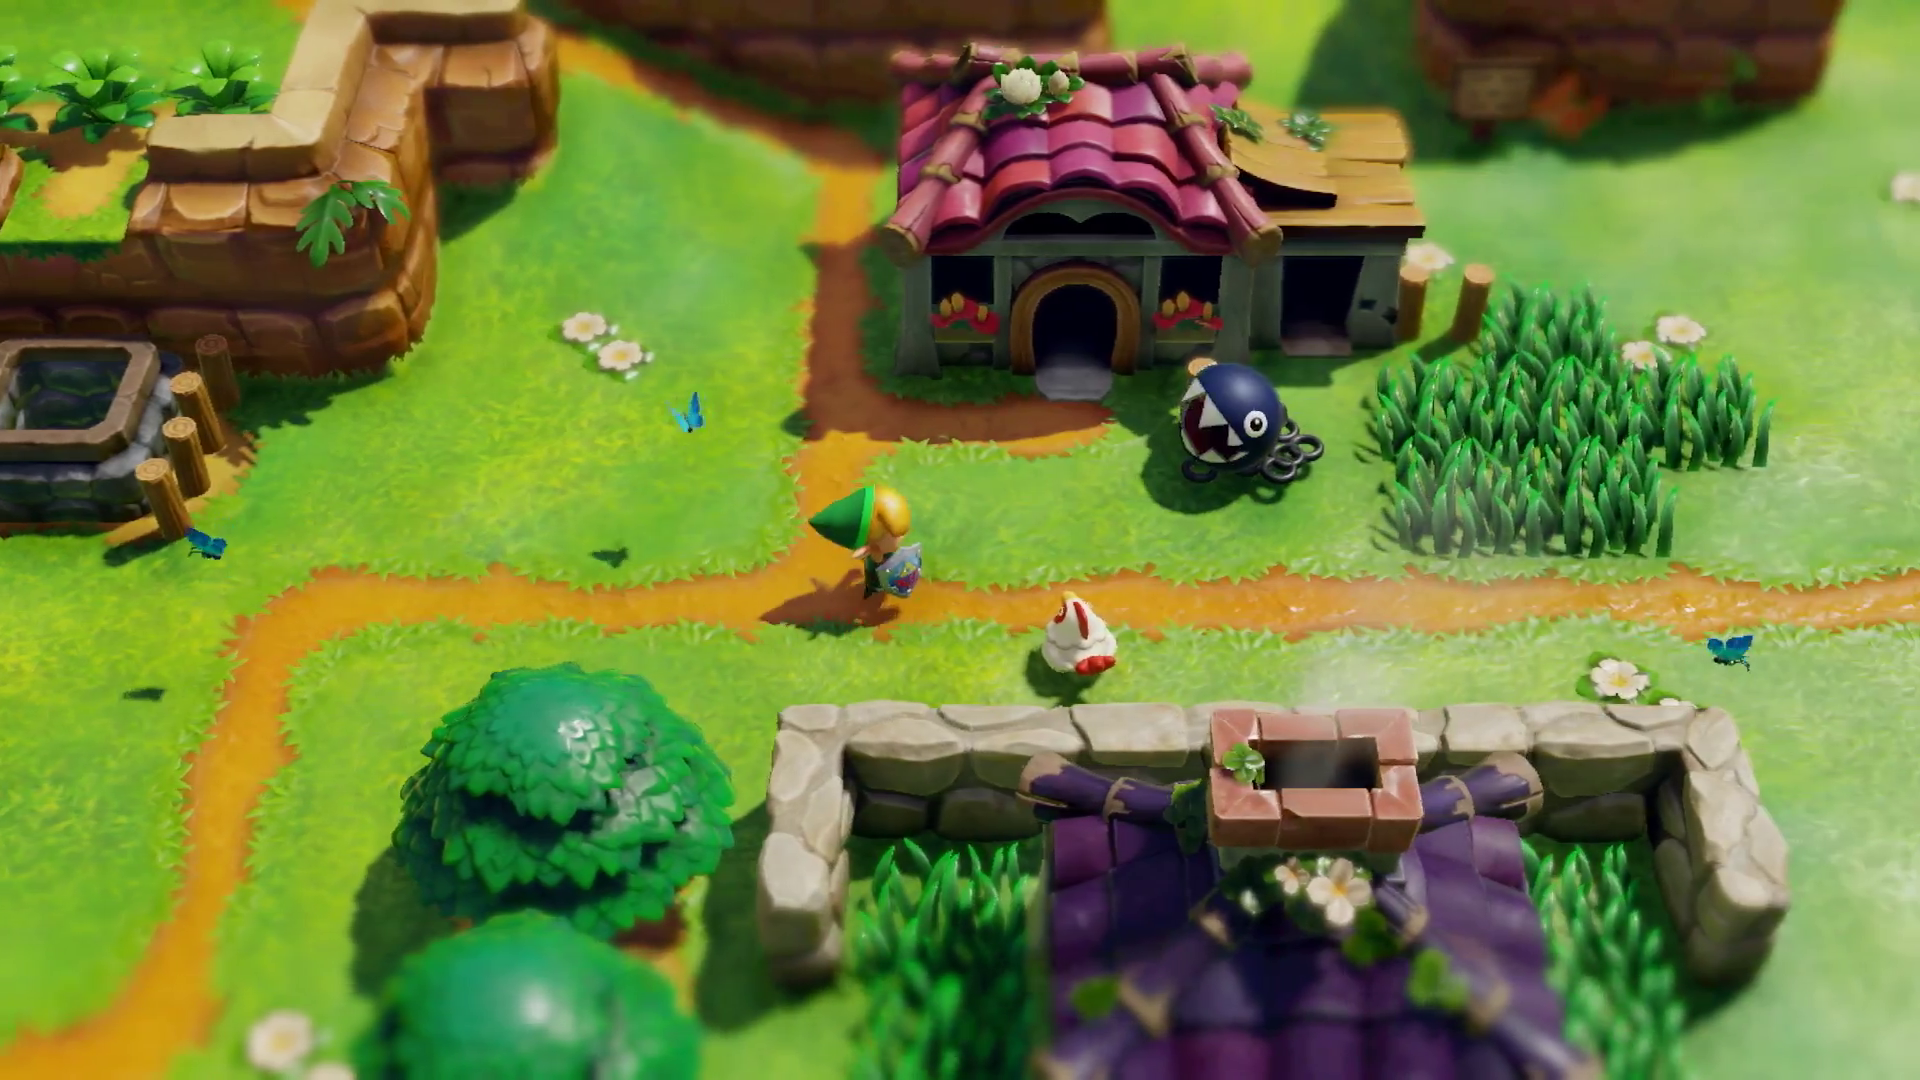 Link's Awakening pre-order guide: Dreamer Edition, Link amiibo, free pins, and more